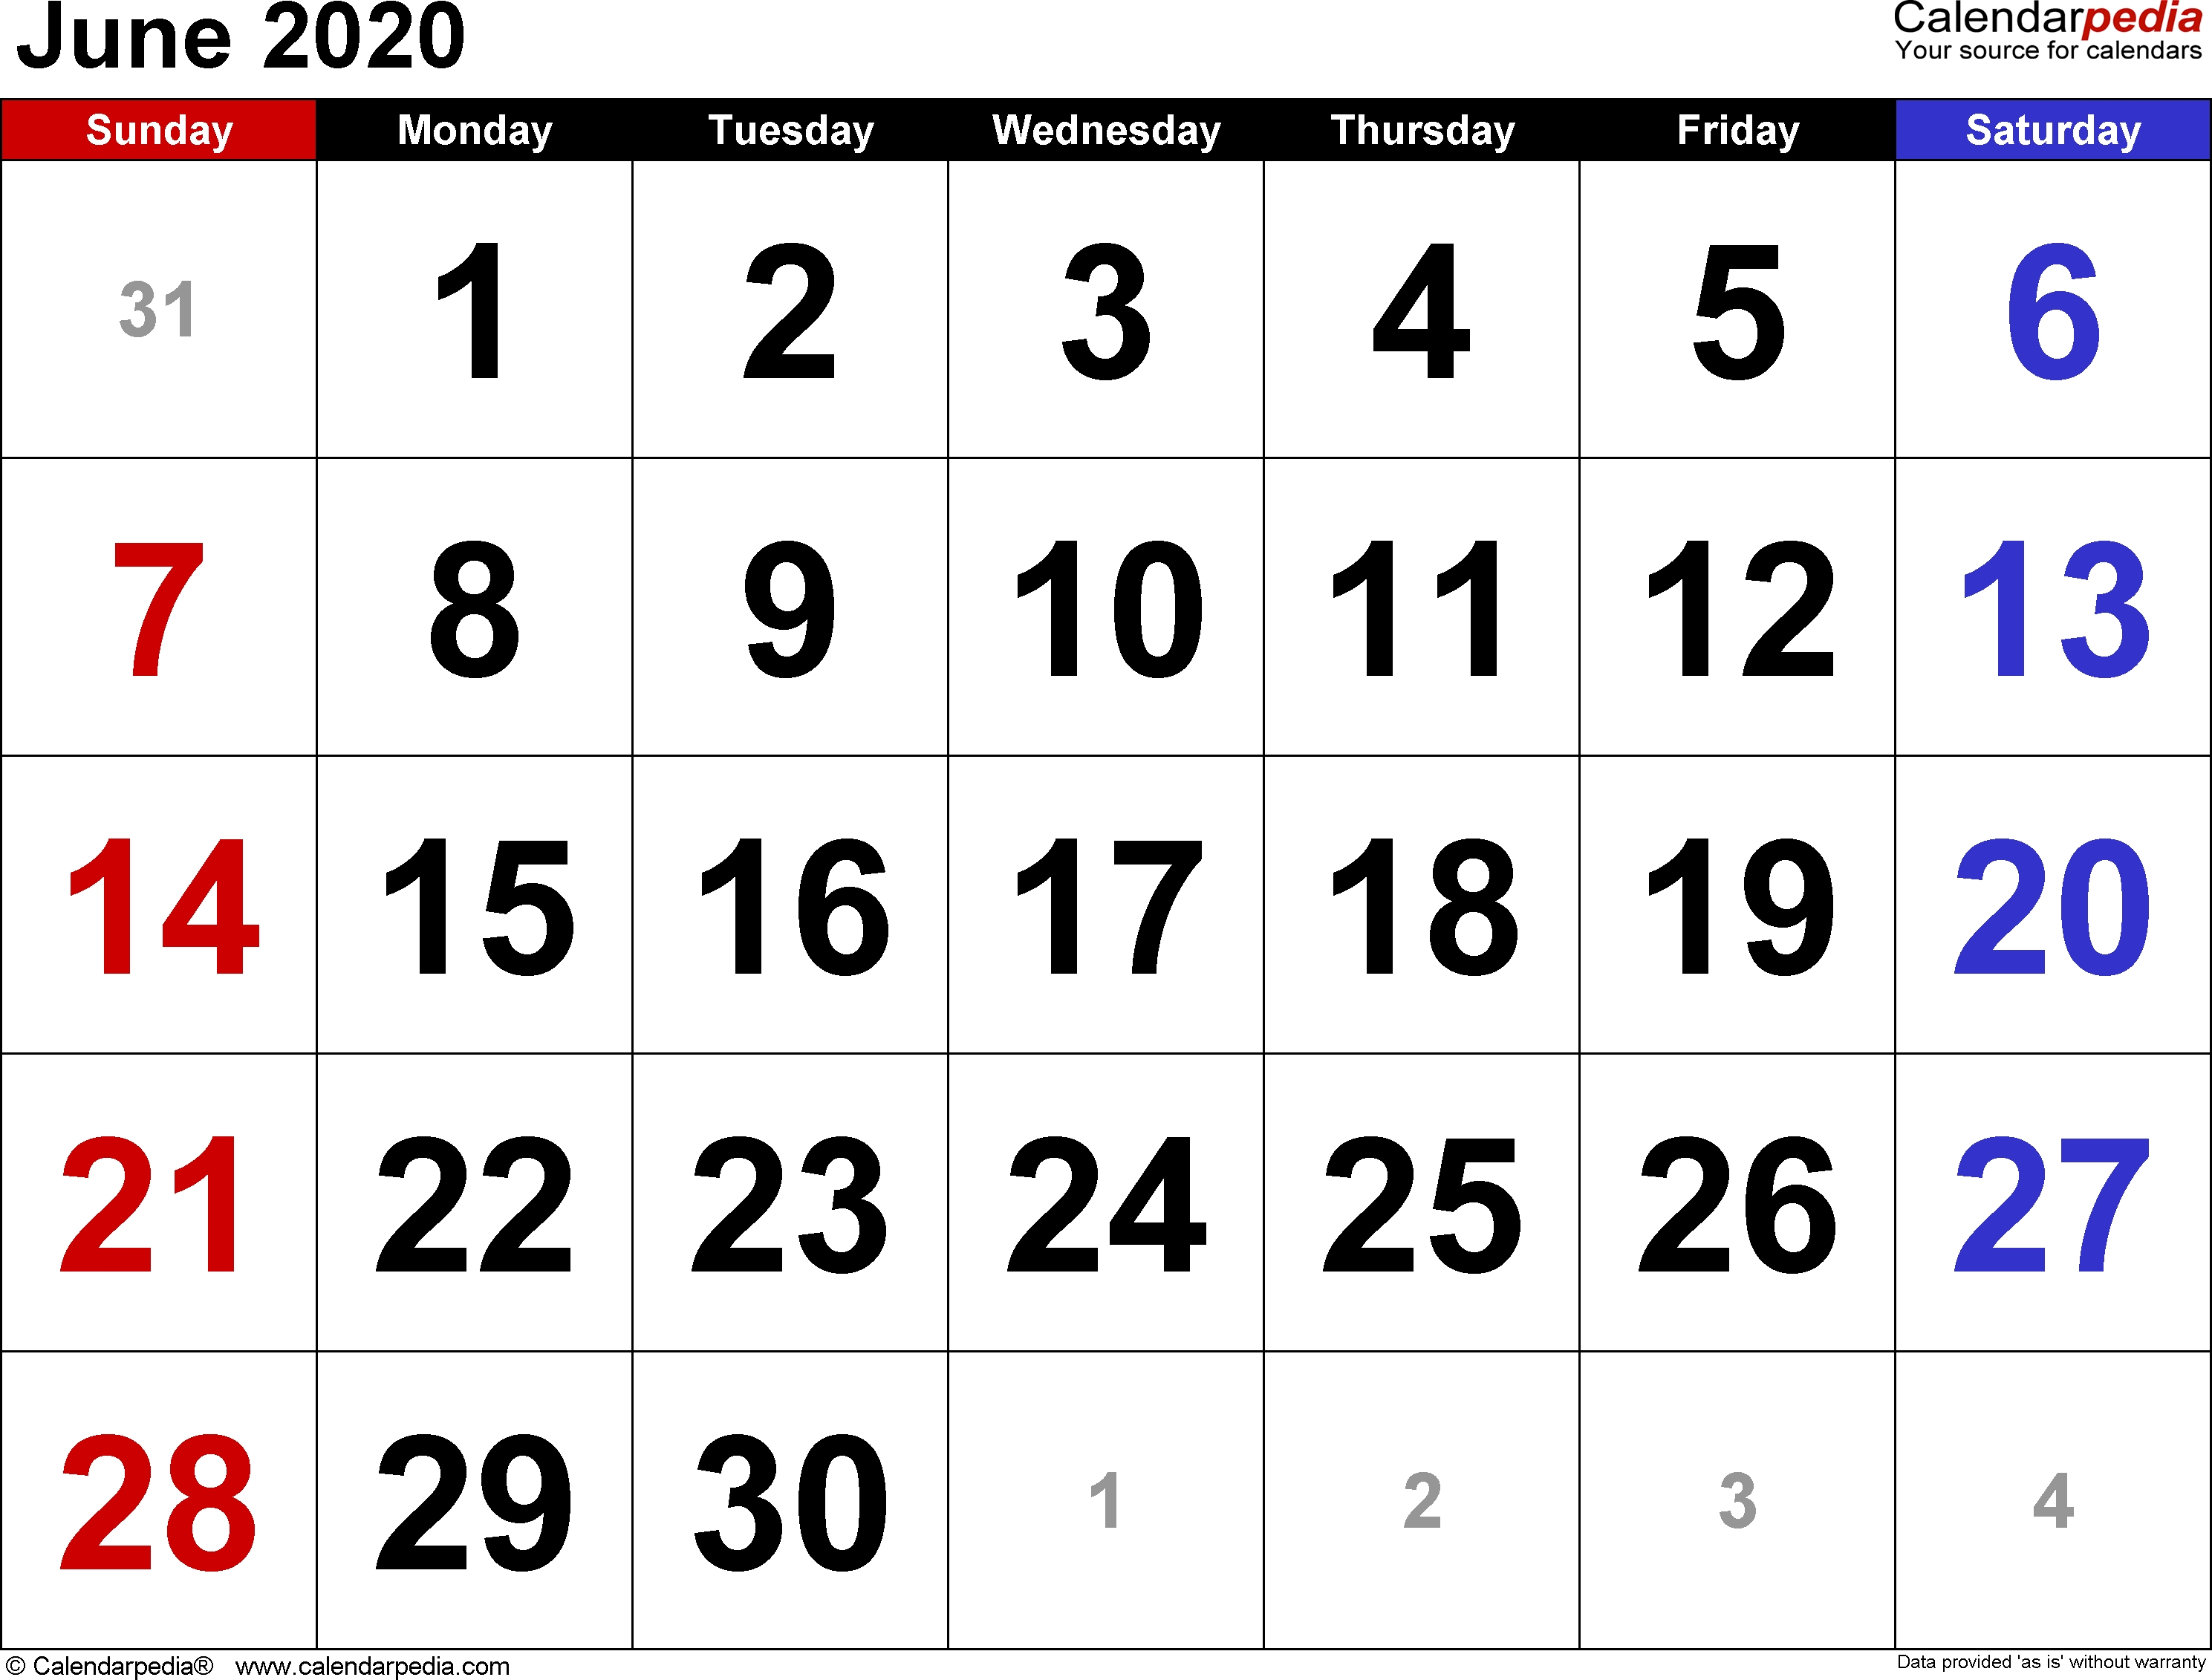 June 2020 Calendars For Word, Excel & Pdf-Blank Customizable June Calendar Template 2020